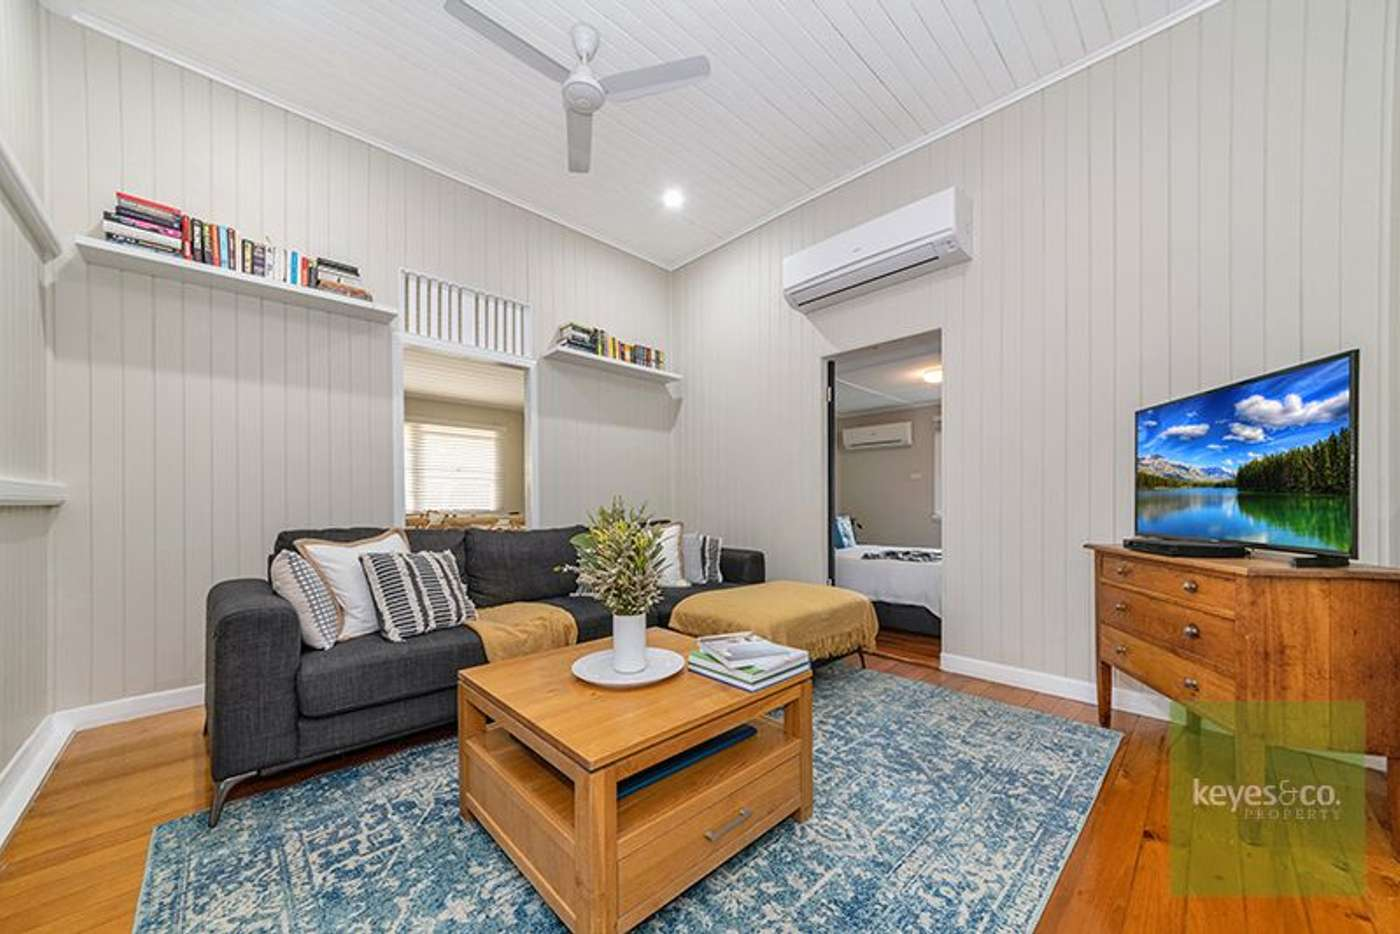 Fifth view of Homely house listing, 70 Ninth Avenue, Railway Estate QLD 4810